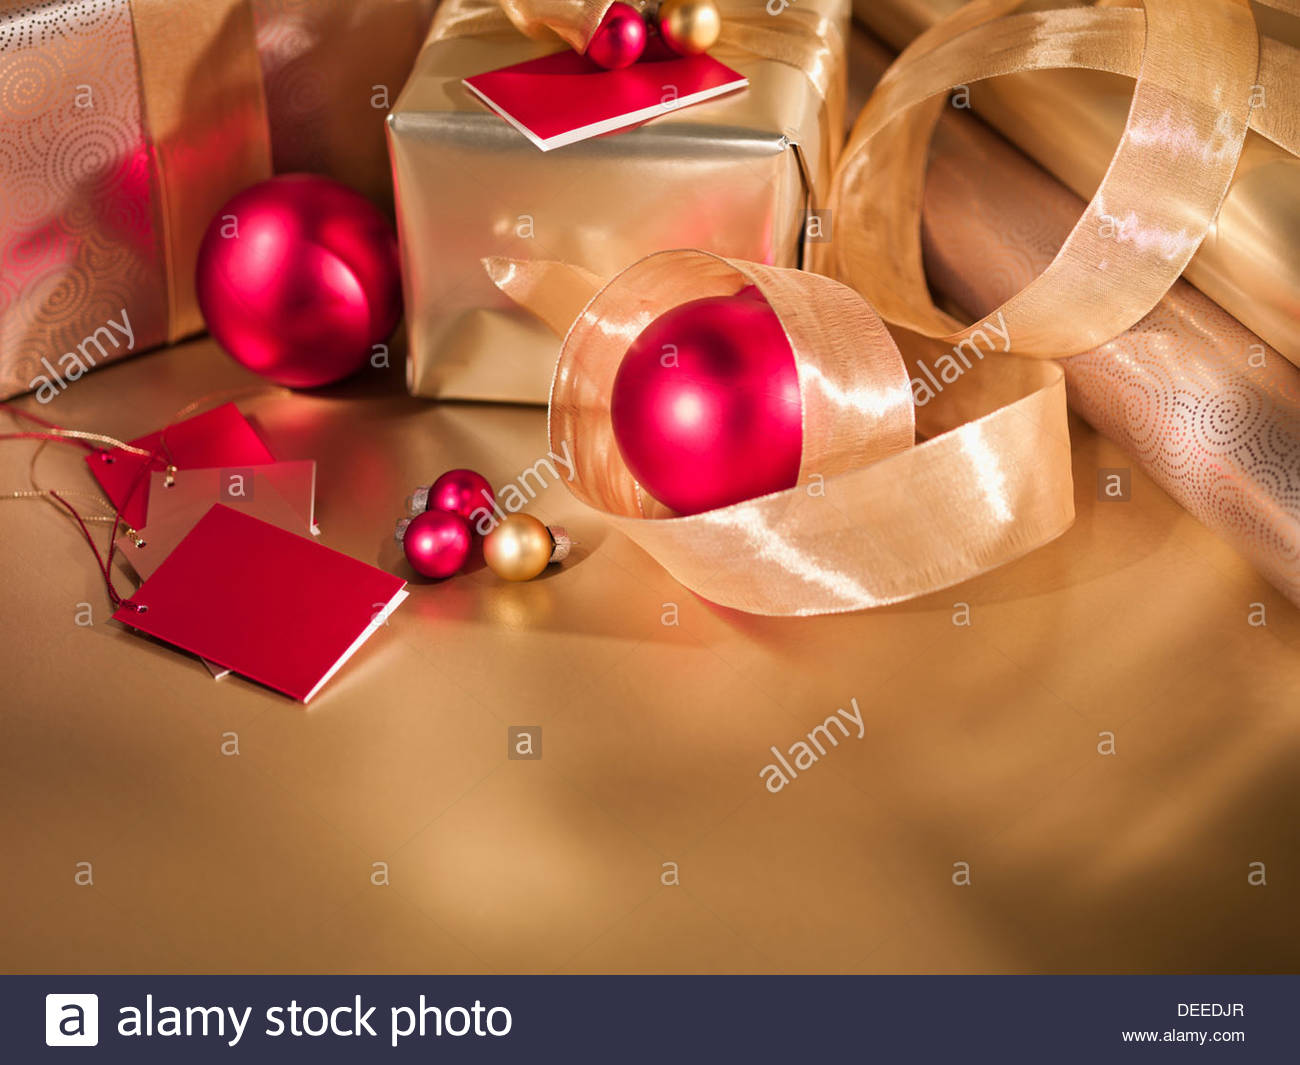 Christmas ornaments, ribbon and gifts - Stock Image